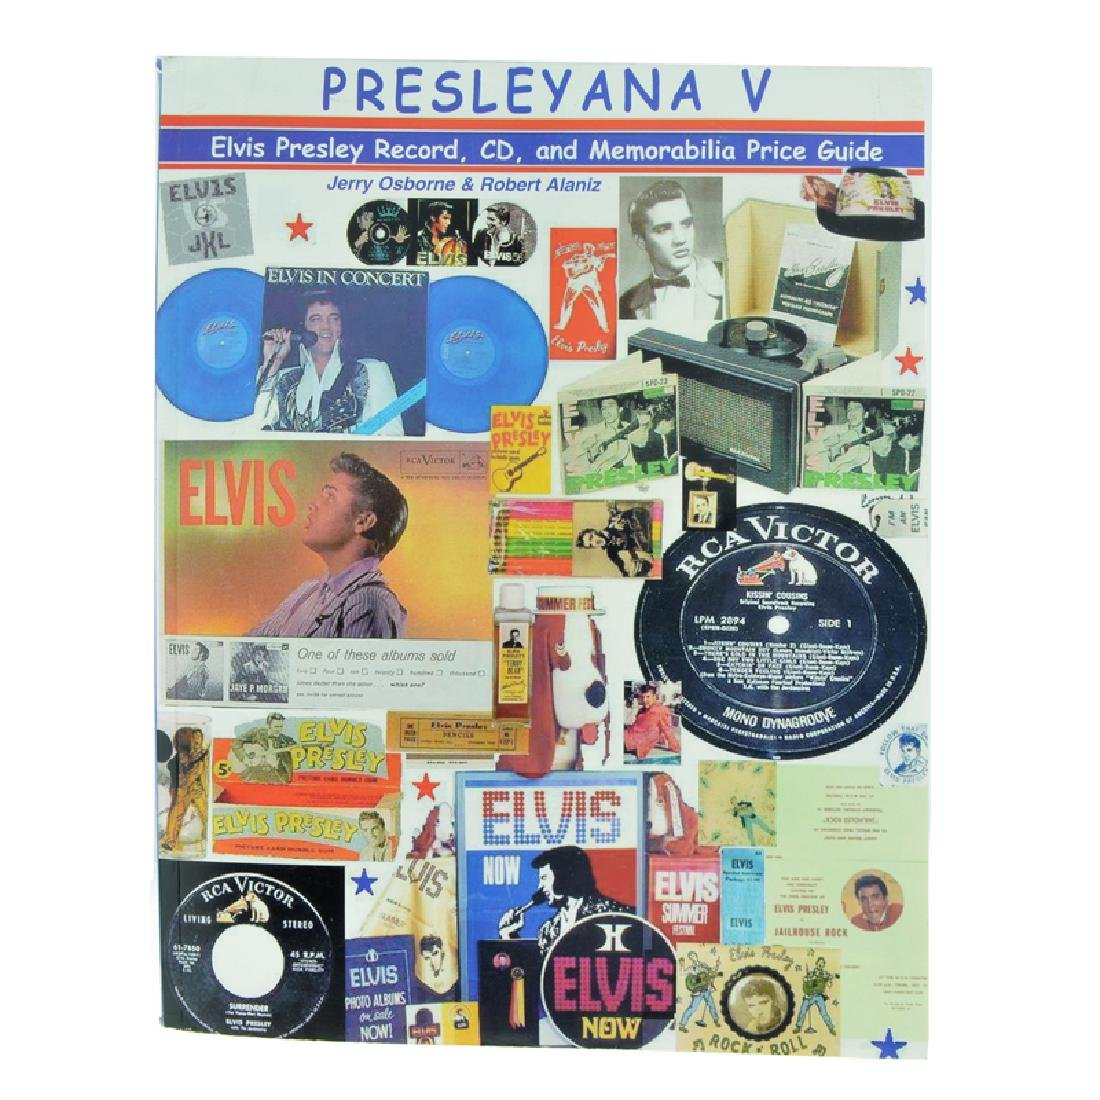 Presleyana V: The Elvis Presley Album, CD, And